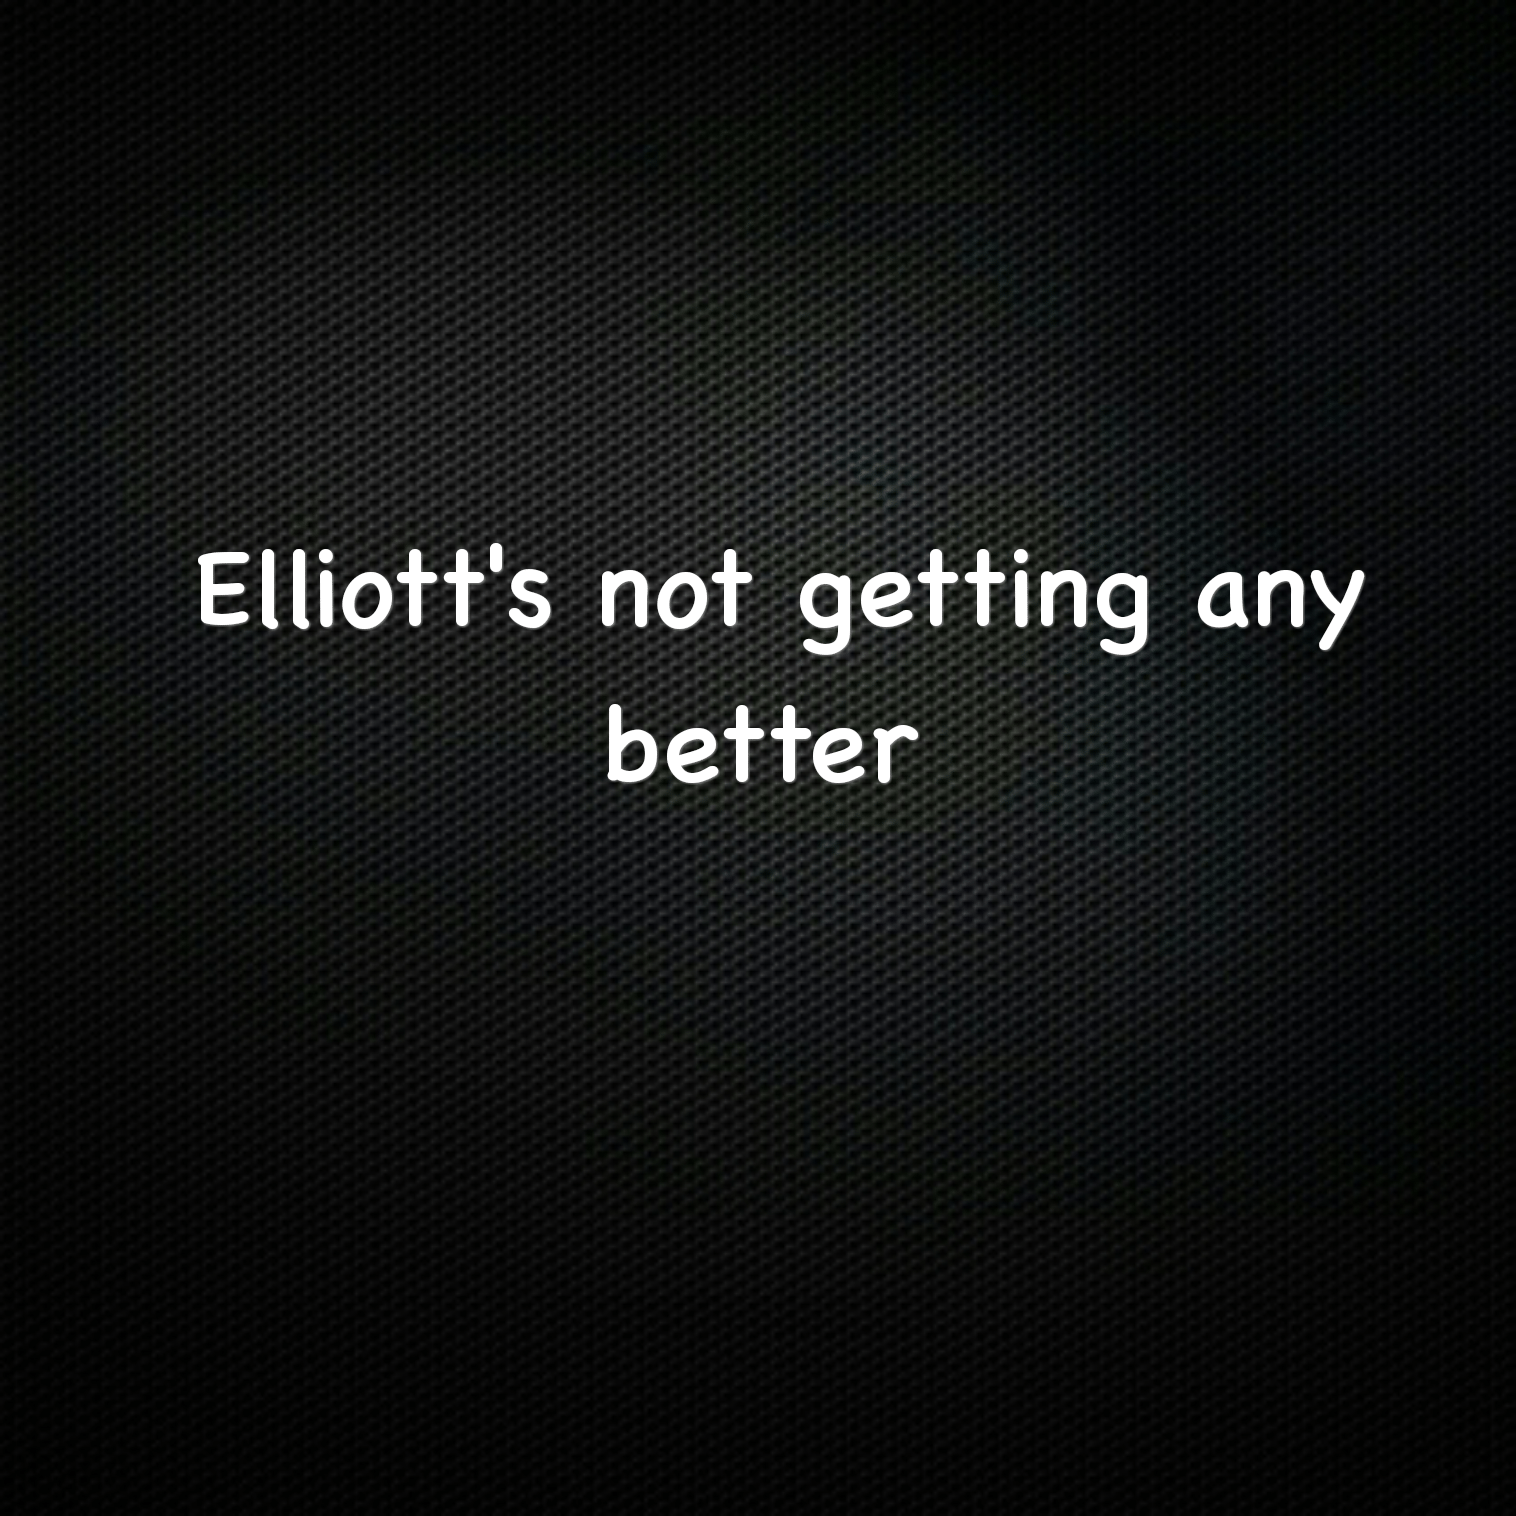 Elliott's not getting any better